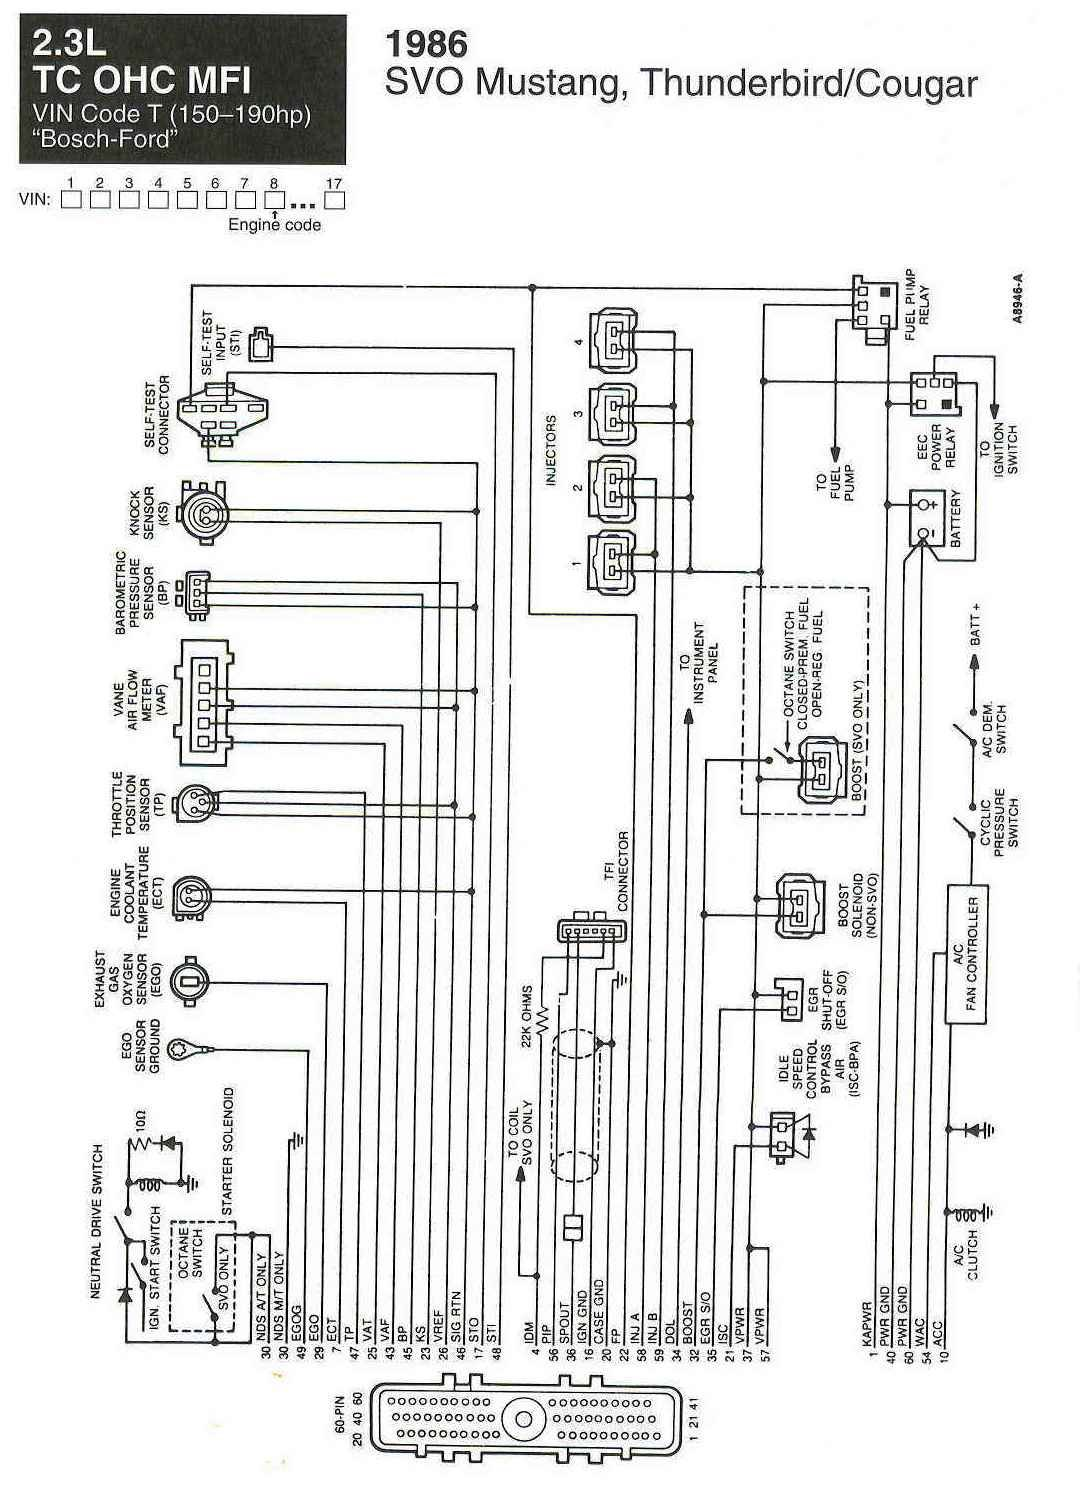 1986 Ford Thunderbird Cruise Control Wiring Just Another Aftermarket Diagram Library Rh 4 Seo Memo De 1984